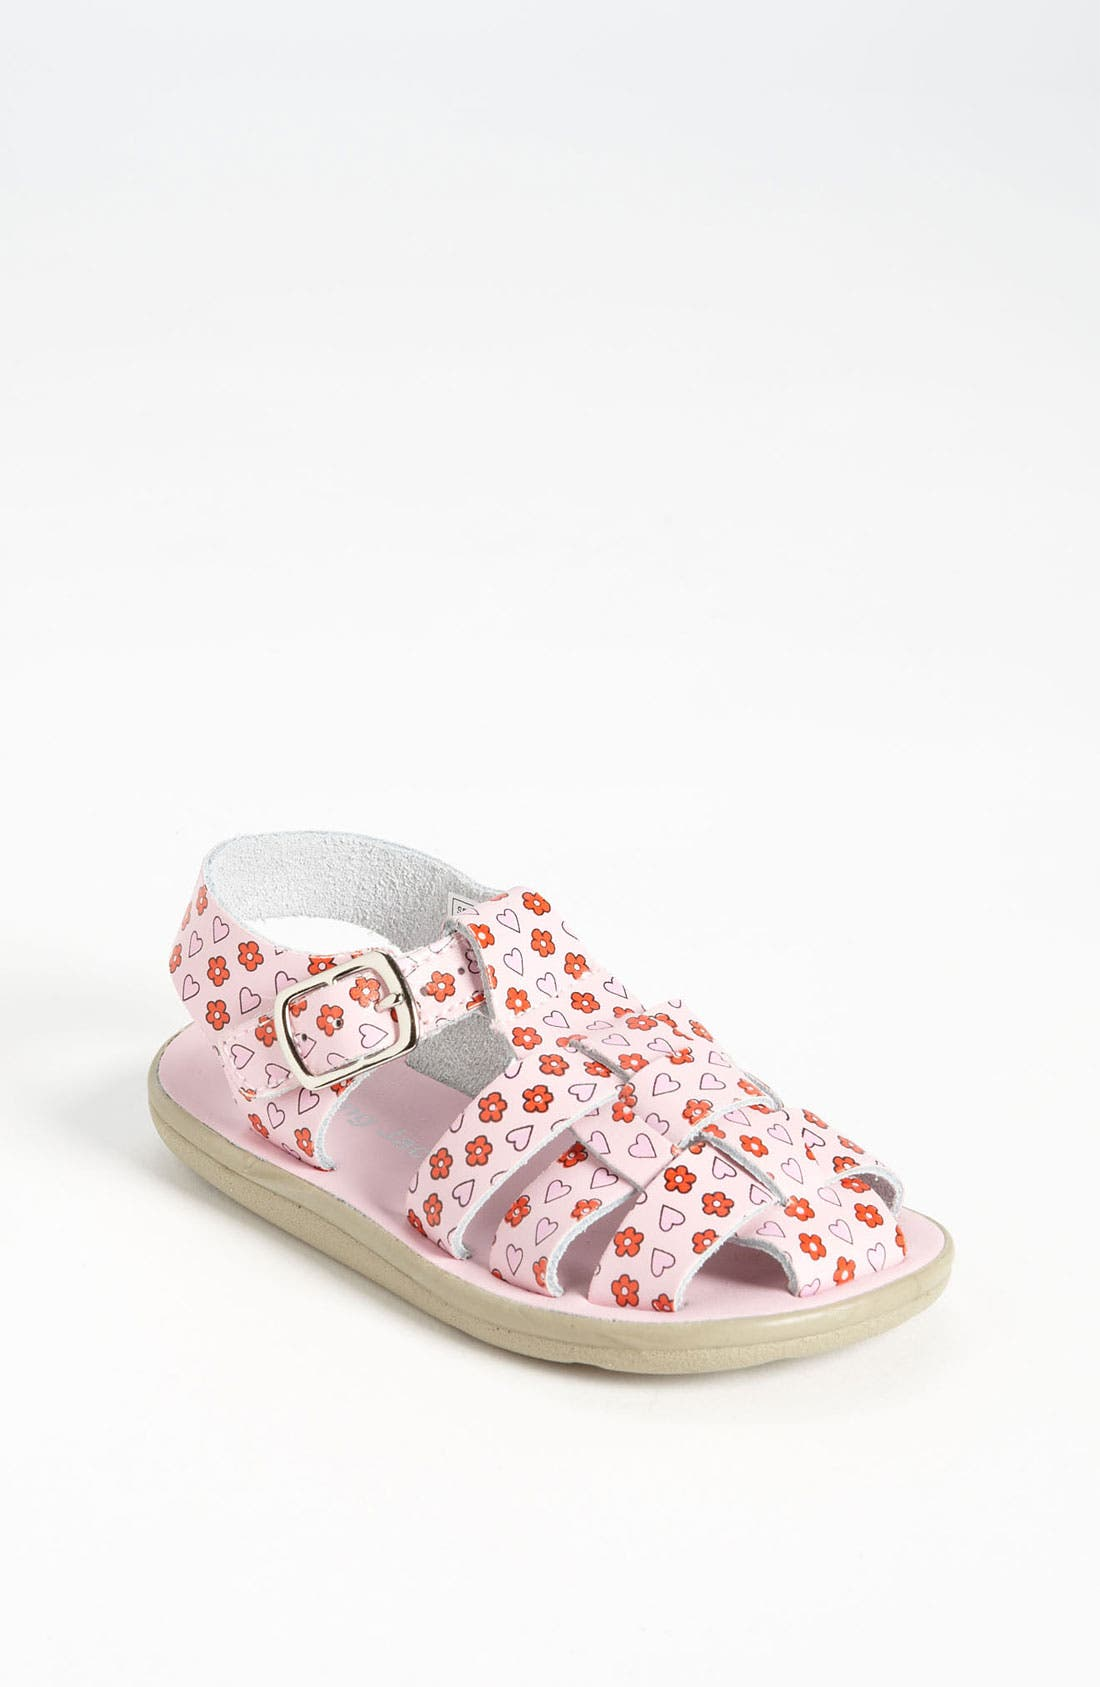 Main Image - Jumping Jacks 'Sea Fish' Sandal (Walker & Toddler)